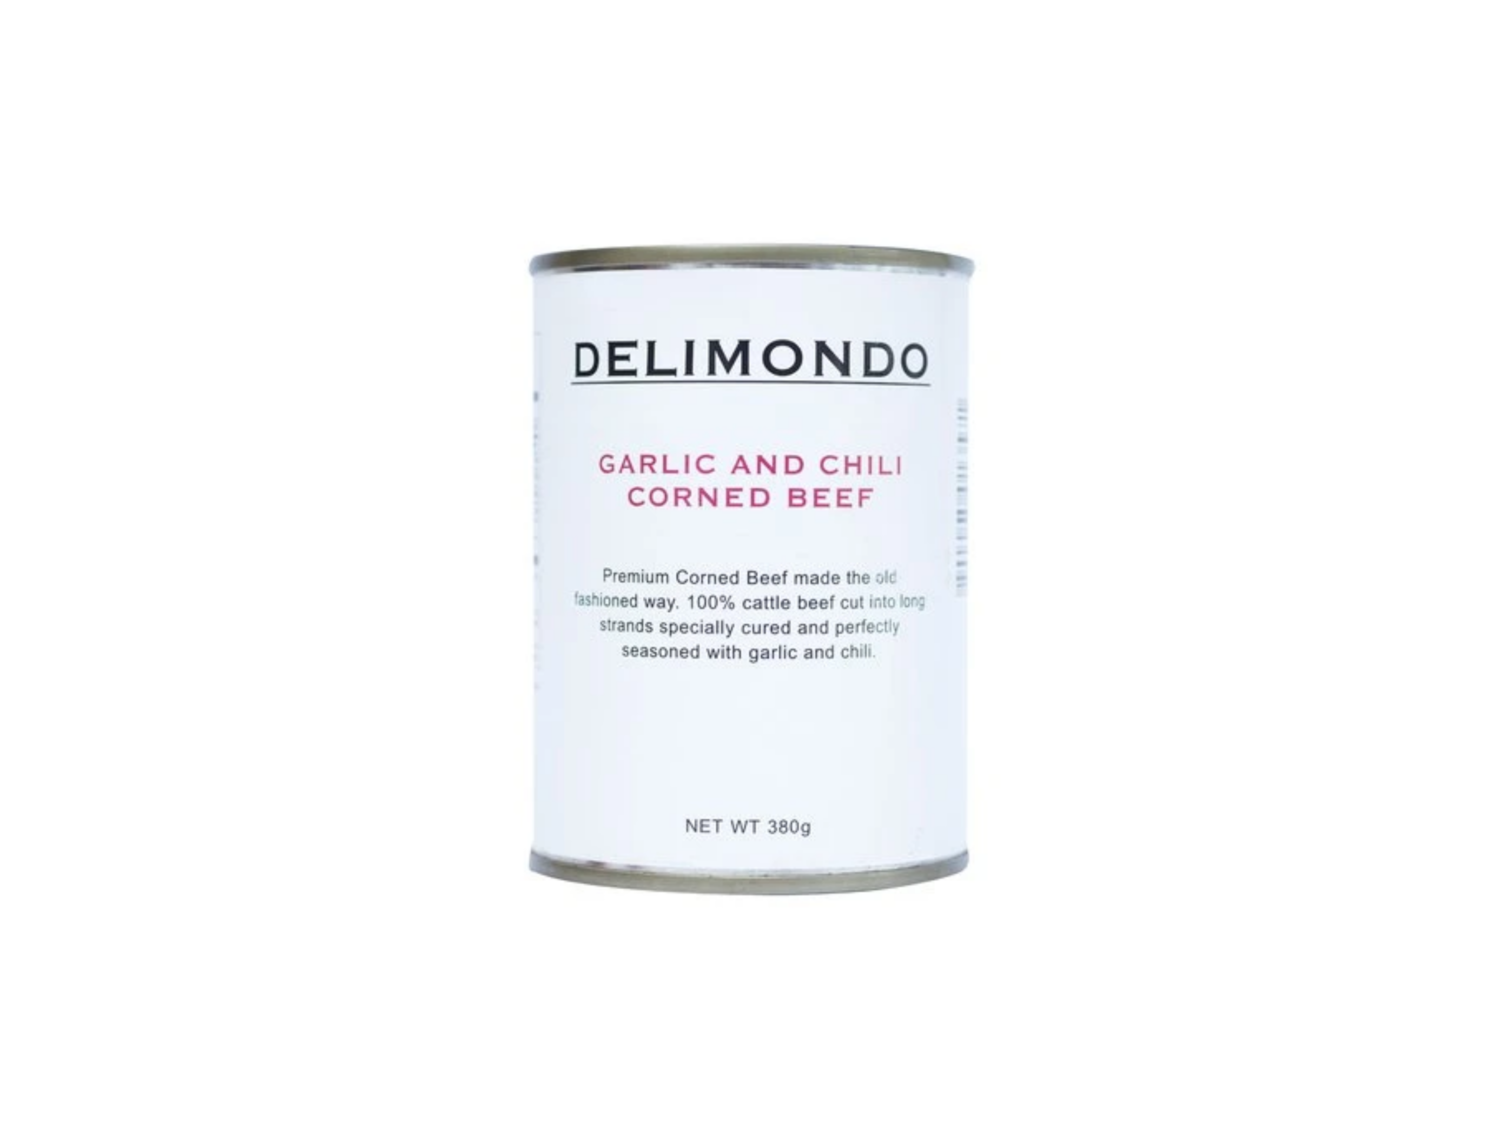 Delimondo Garlic & Chili Corned Beef (380g)